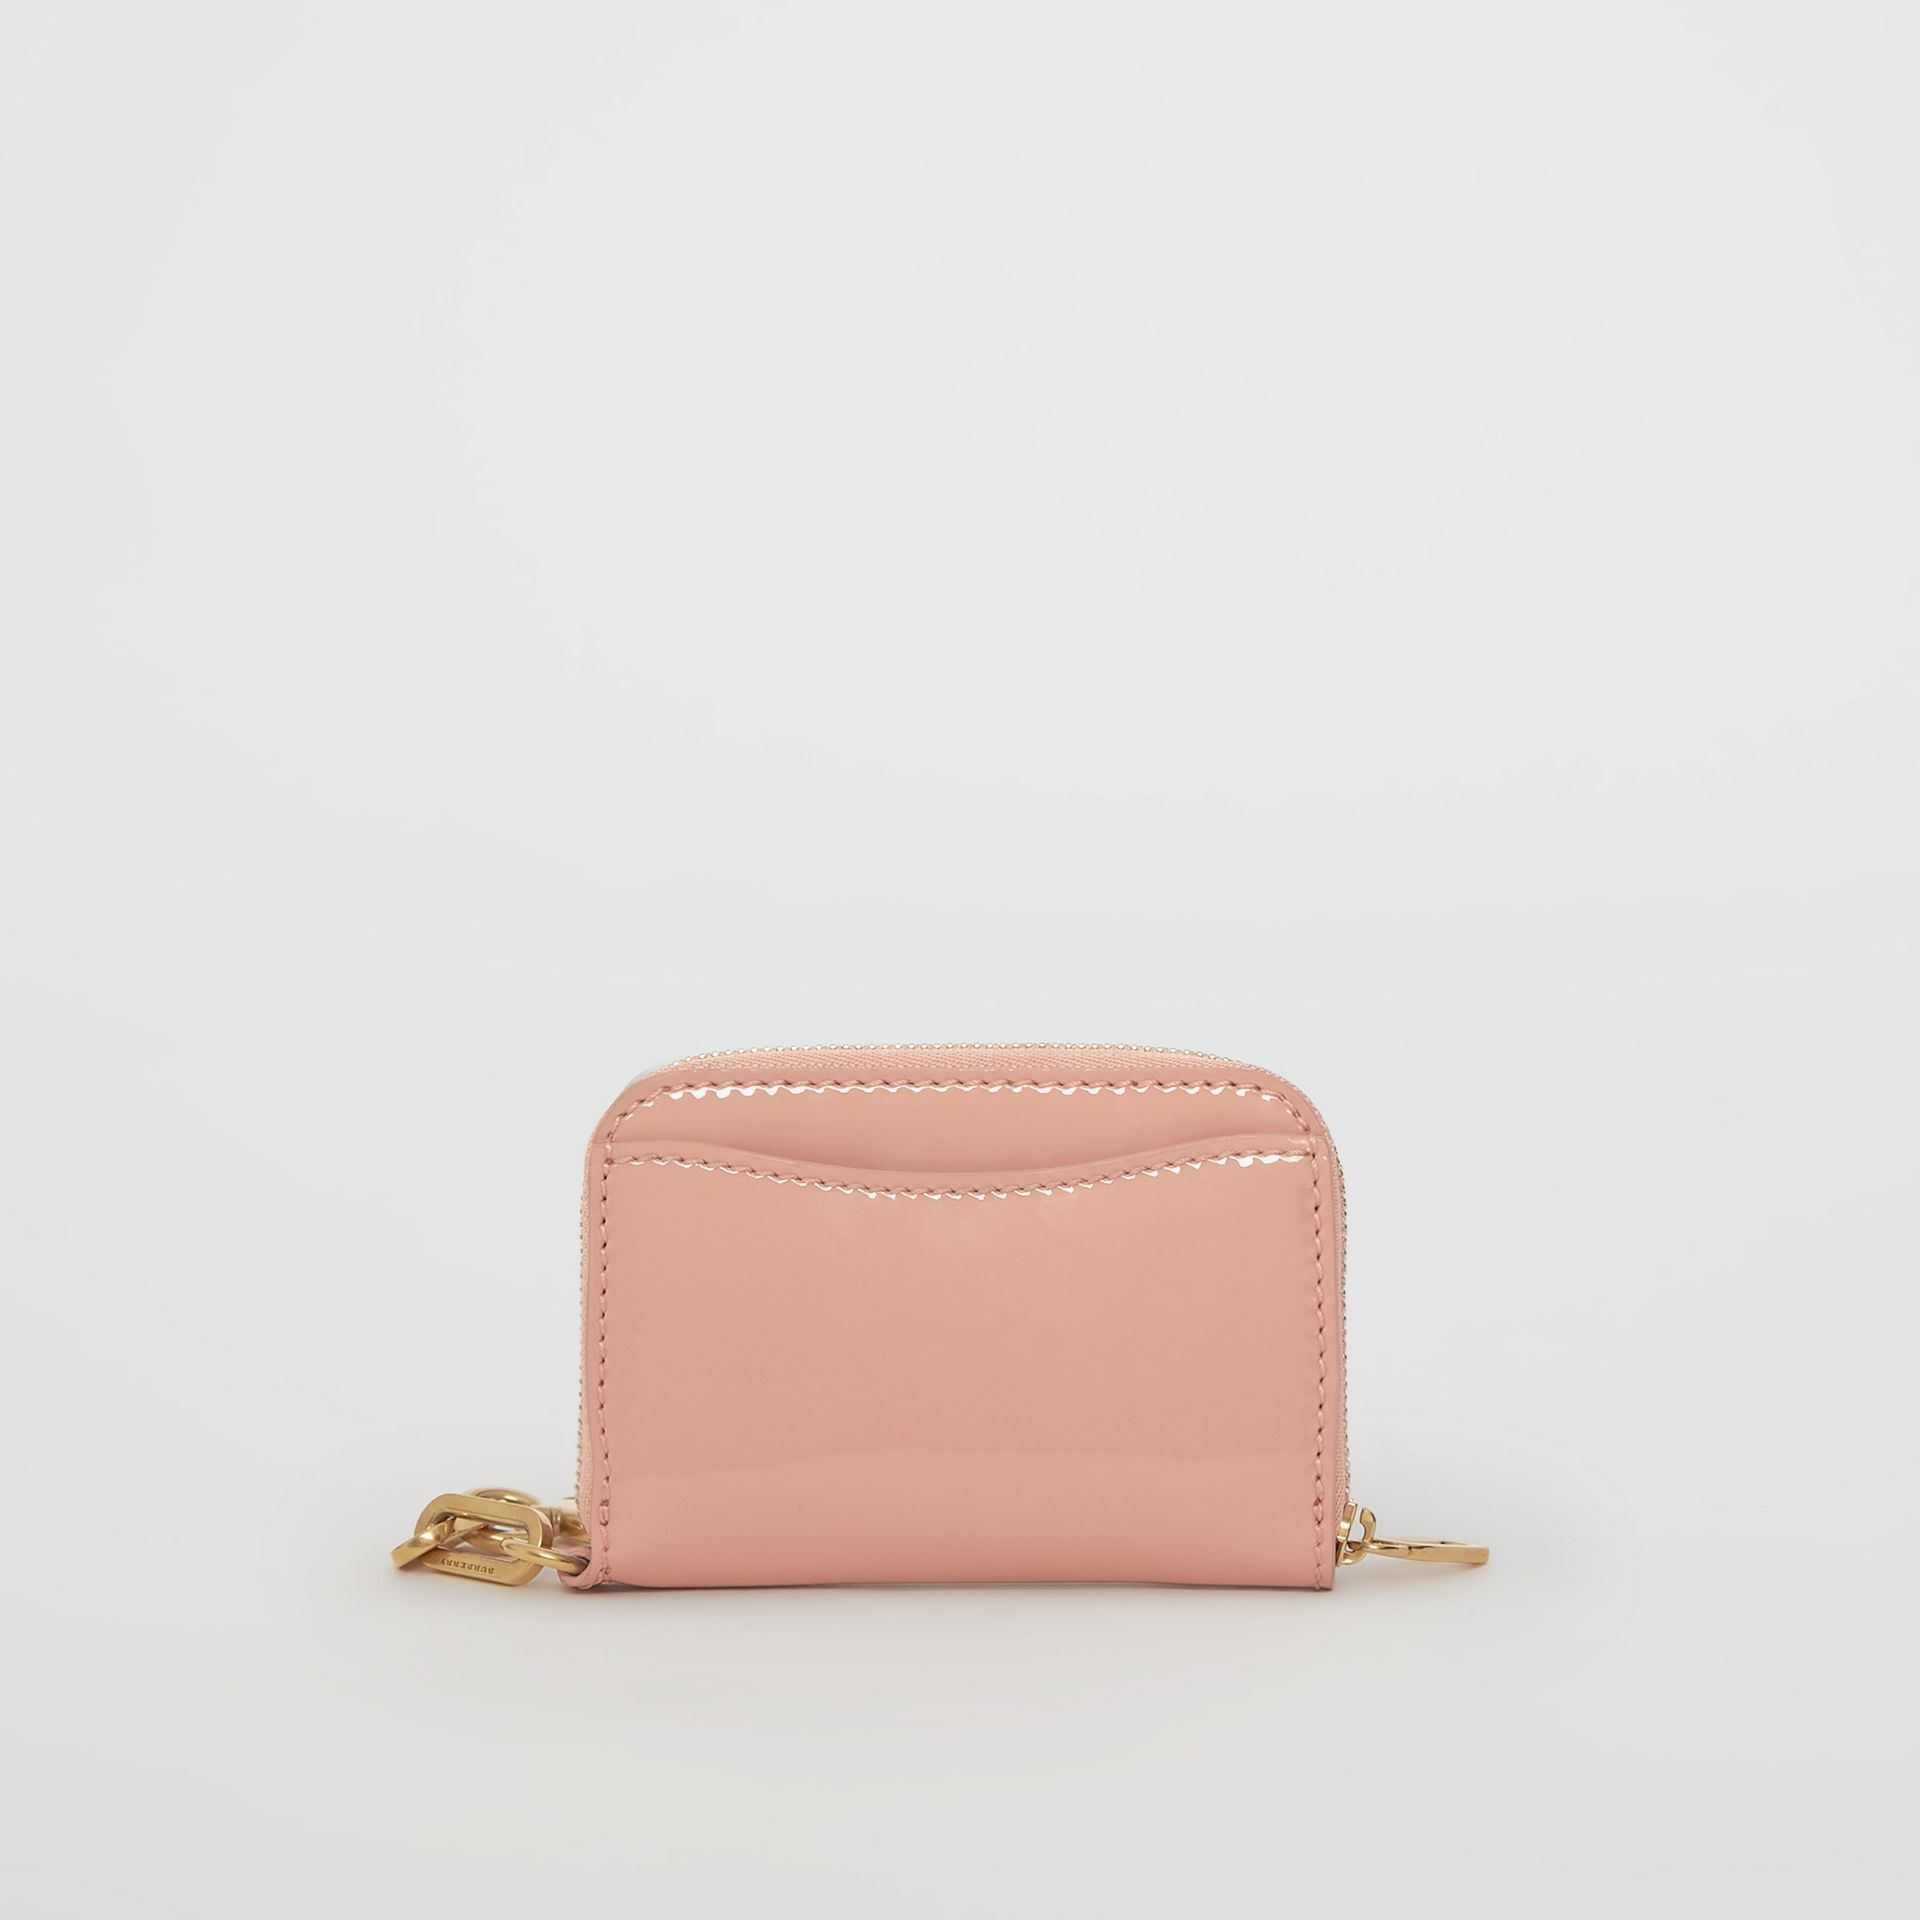 Link Detail Patent Leather Ziparound Wallet in Pale Fawn Pink - Women | Burberry Singapore - gallery image 5